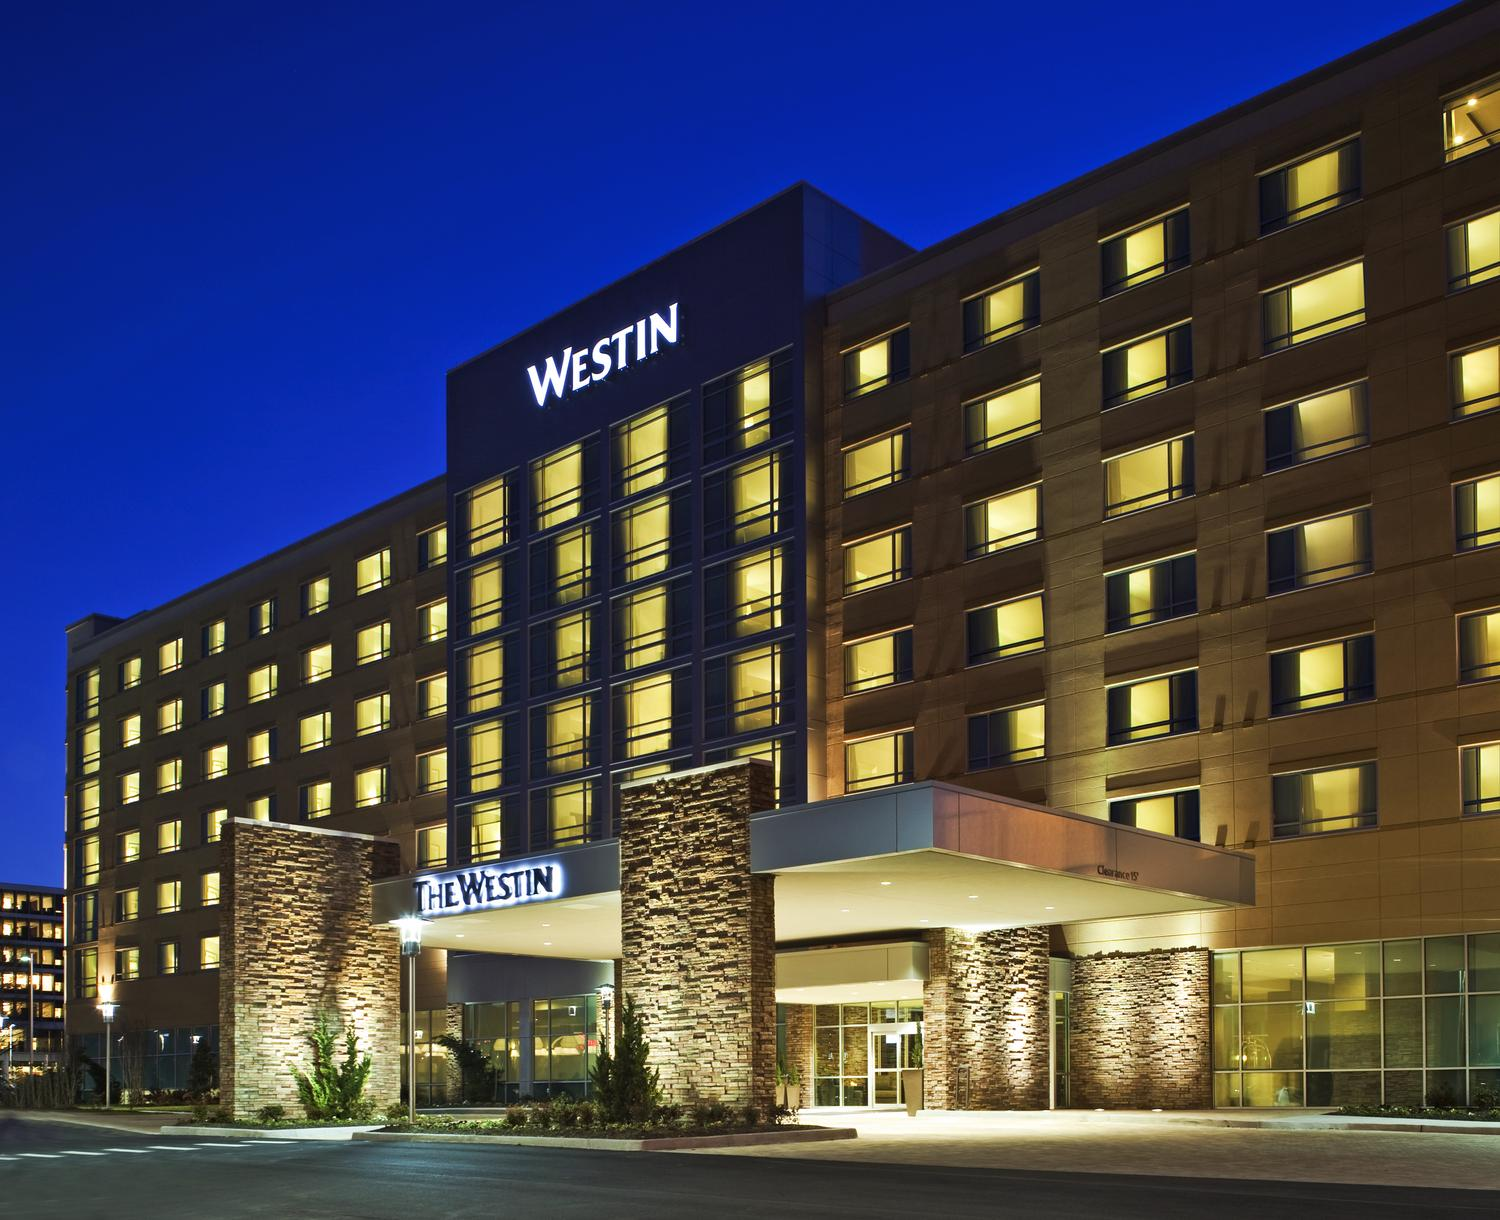 The Westin Richmond